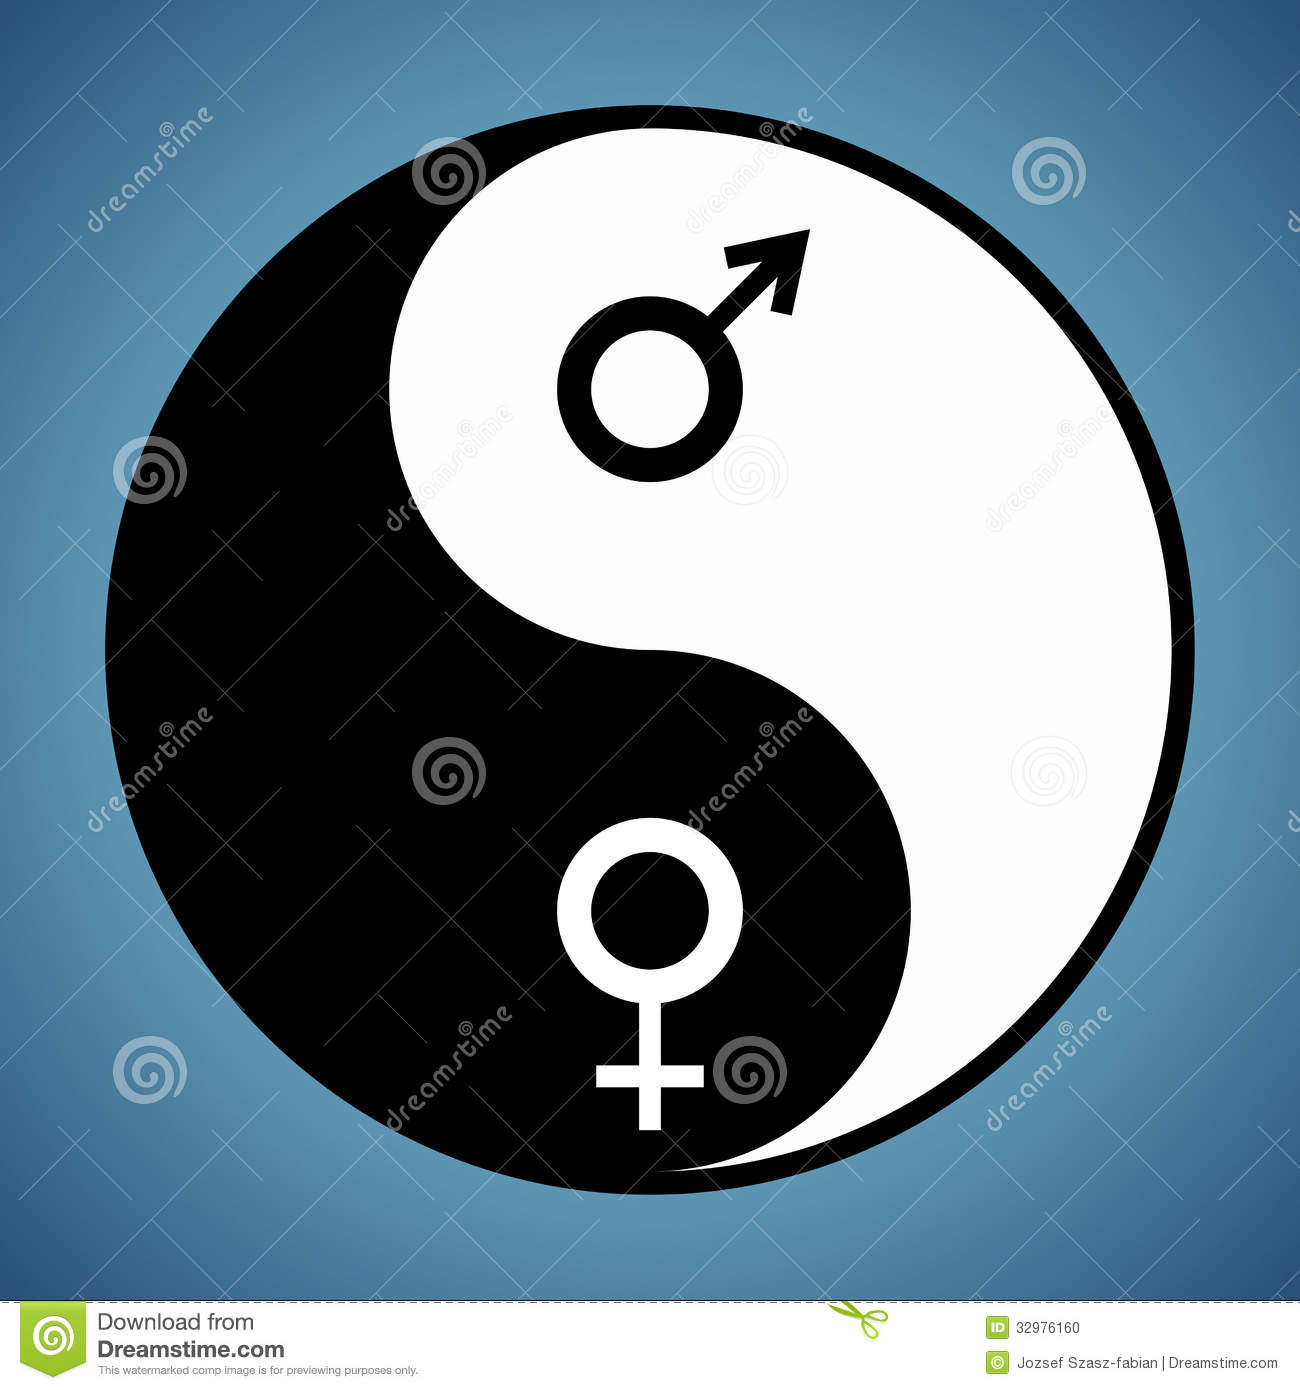 Yin Yang Man And Woman Stock Vector Illustration Of Icon 32976160